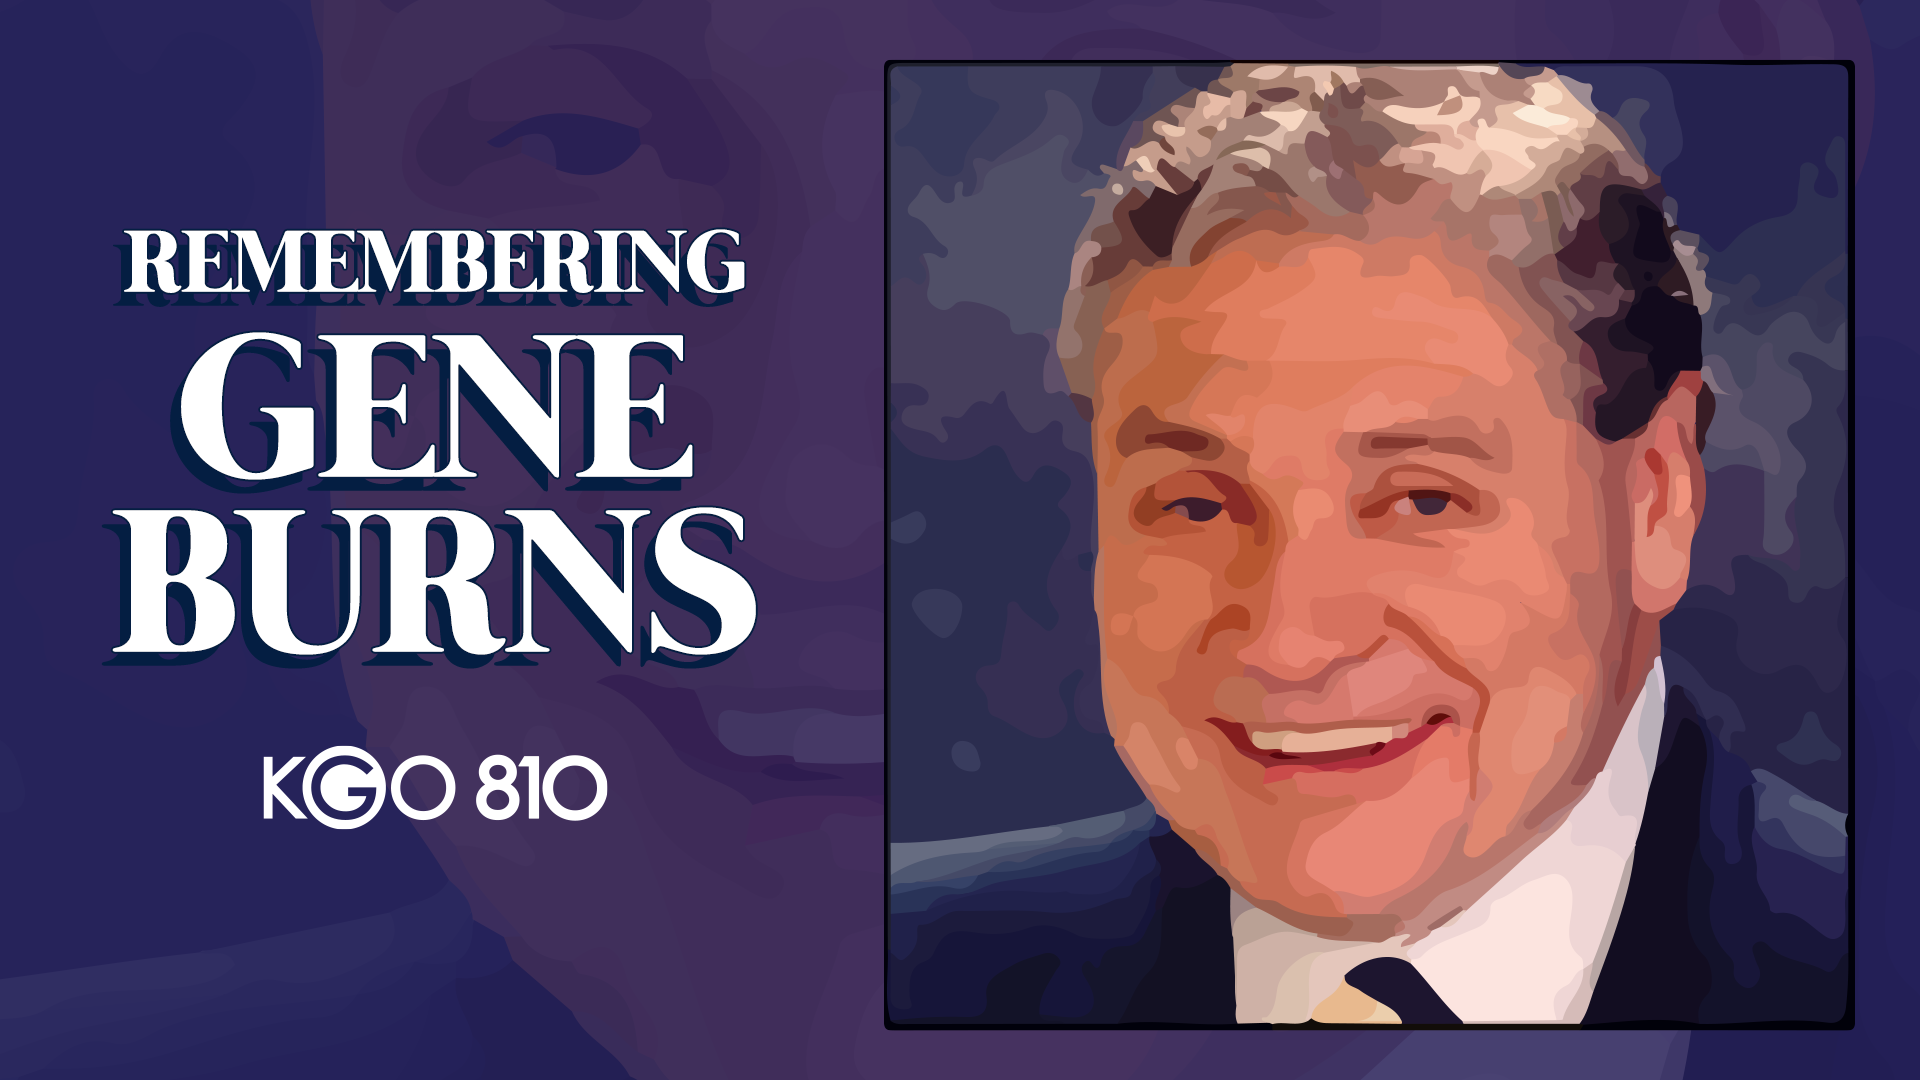 The Morning Show with Nikki Medoro: Remembering Gene Burns